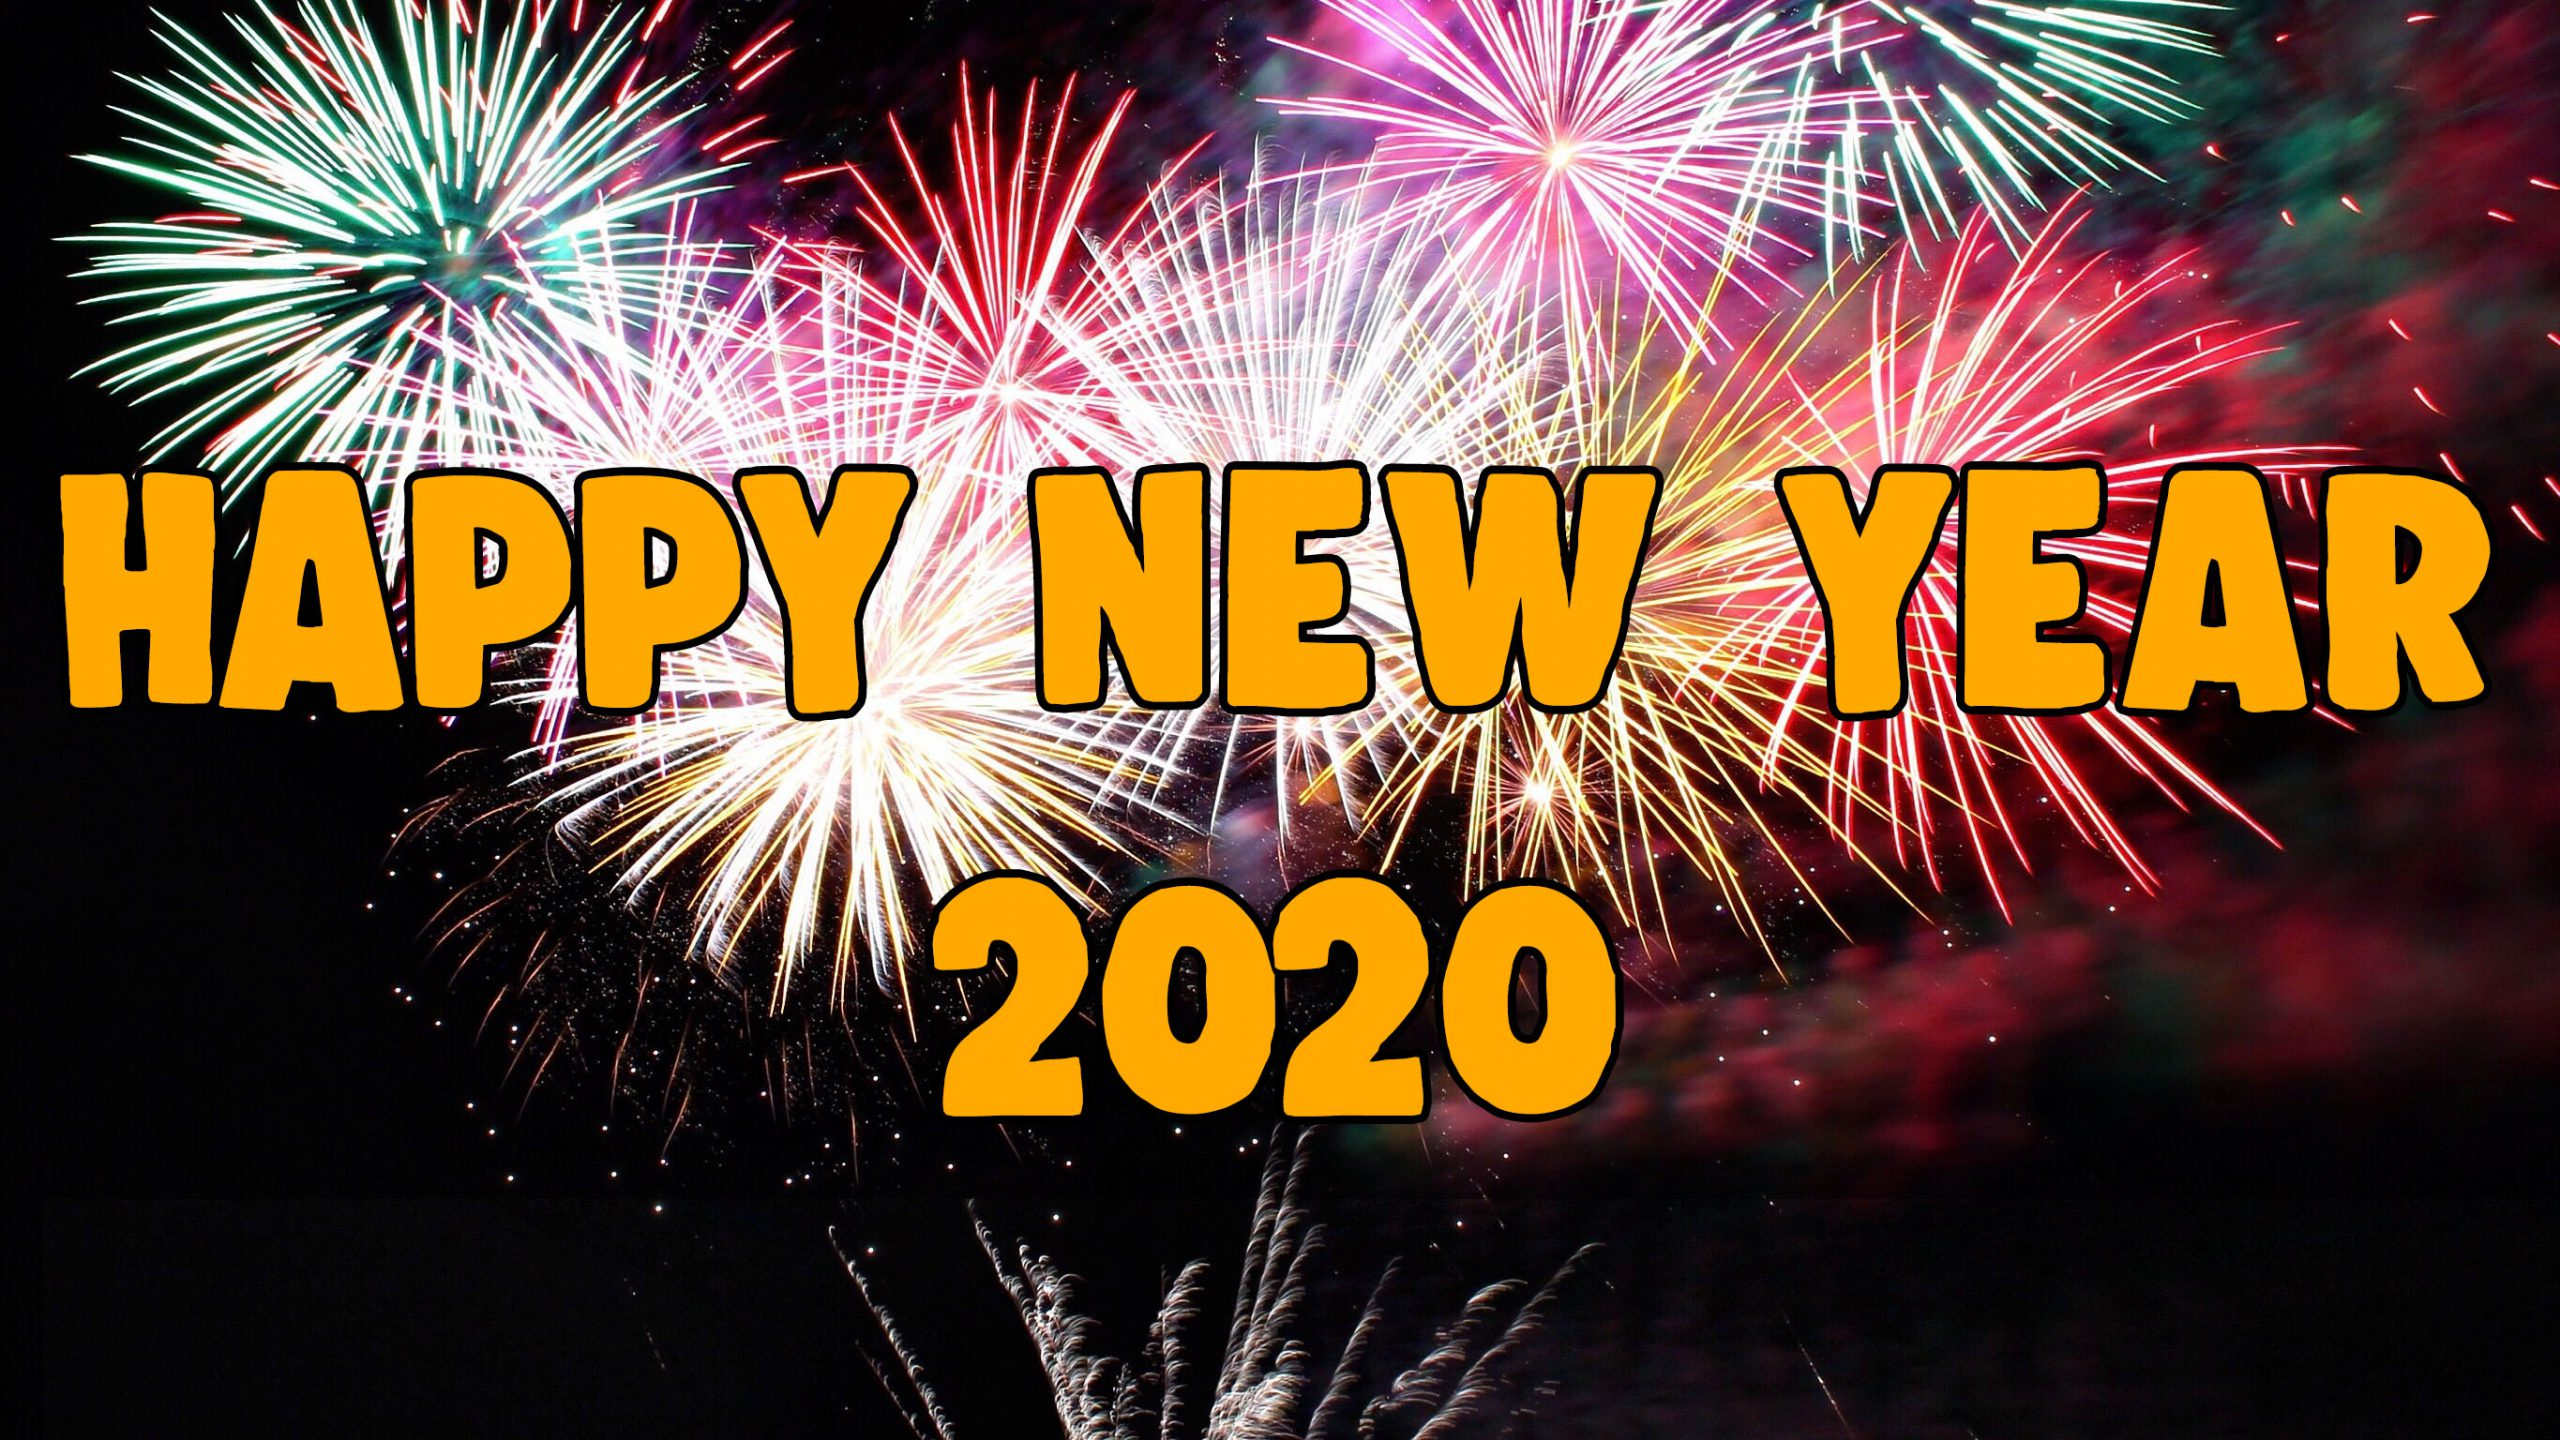 Happy New Year 2020 - Wishes, images, status Video, Quotes, Greetings, Photos, messages for friends and family